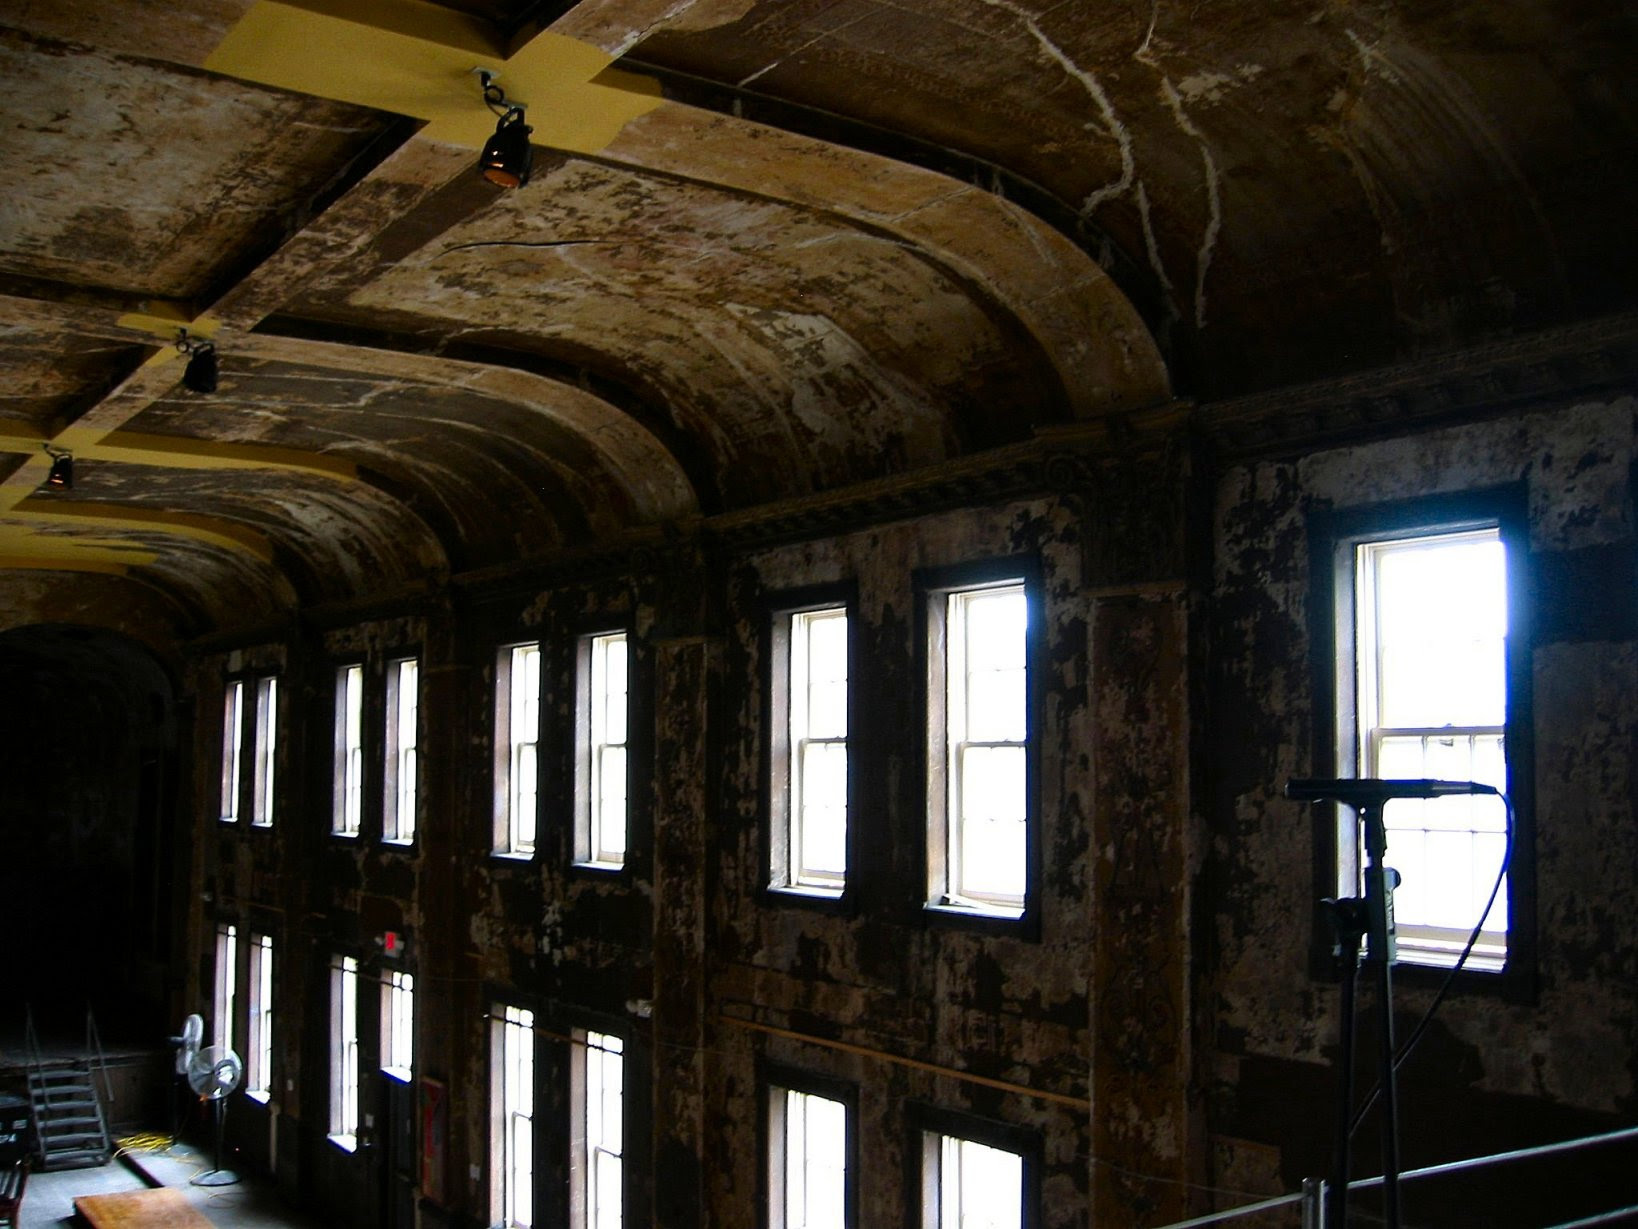 Turner Hall restoration - Milwaukee - the wall of windows that face downtown - soul-amp.com